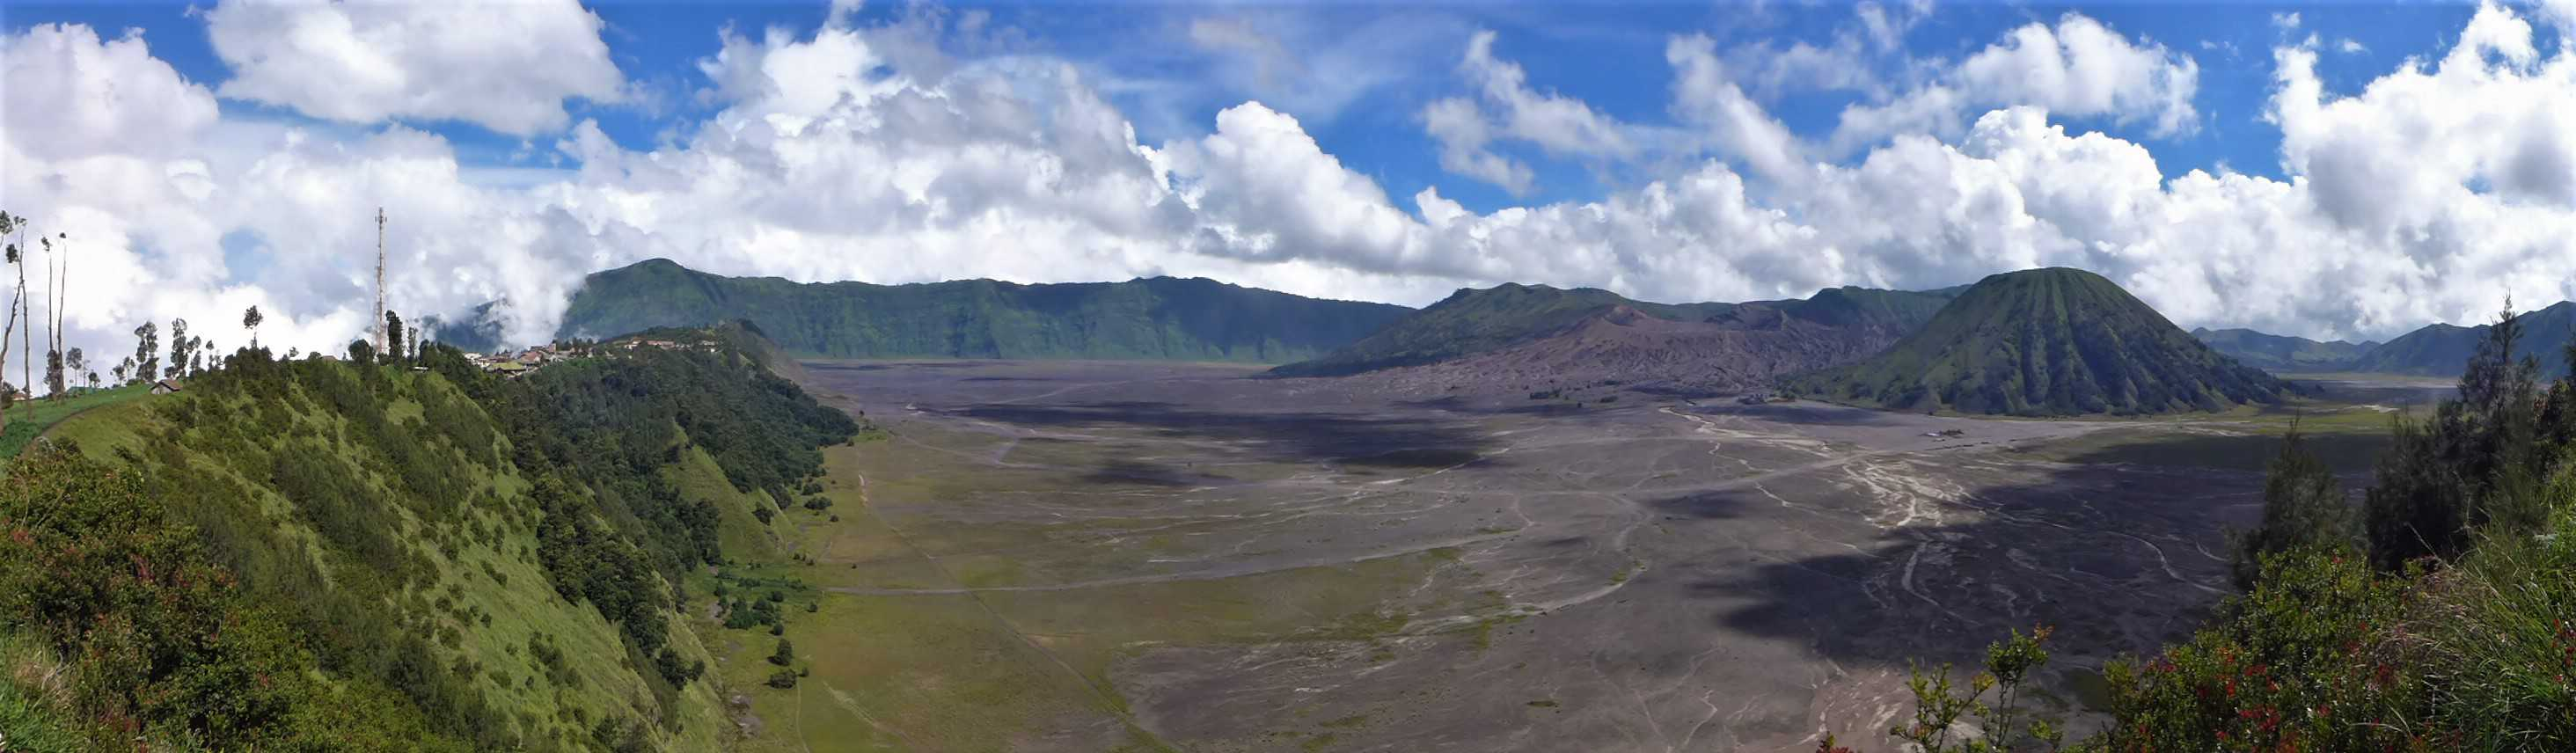 Treking w Indonezji, Bromo